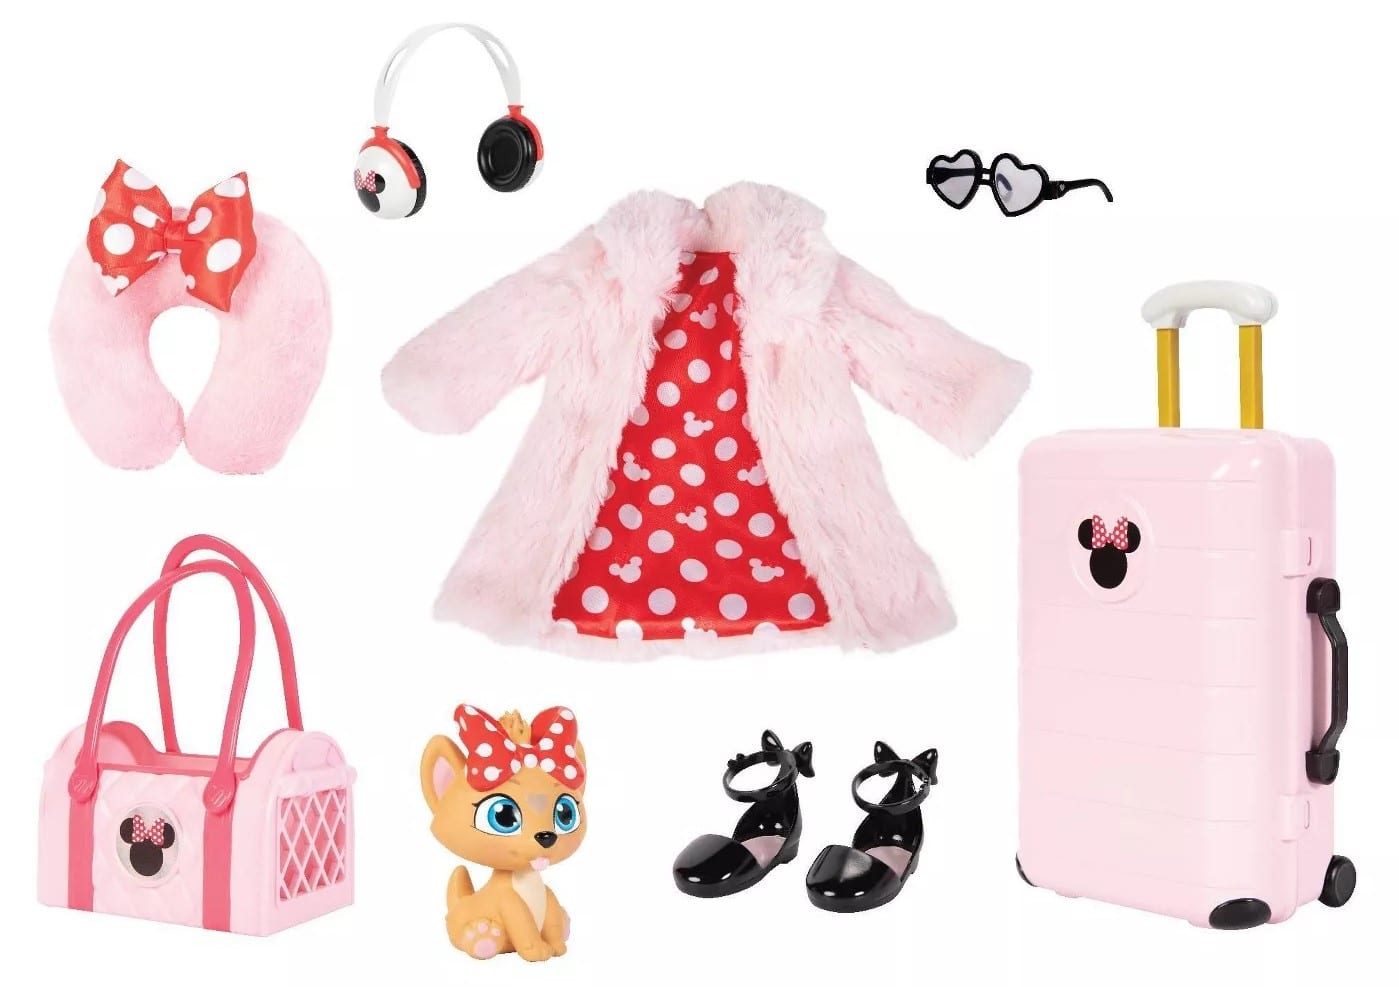 Disney ily 4EVER fashion doll collection is now available at Target 32